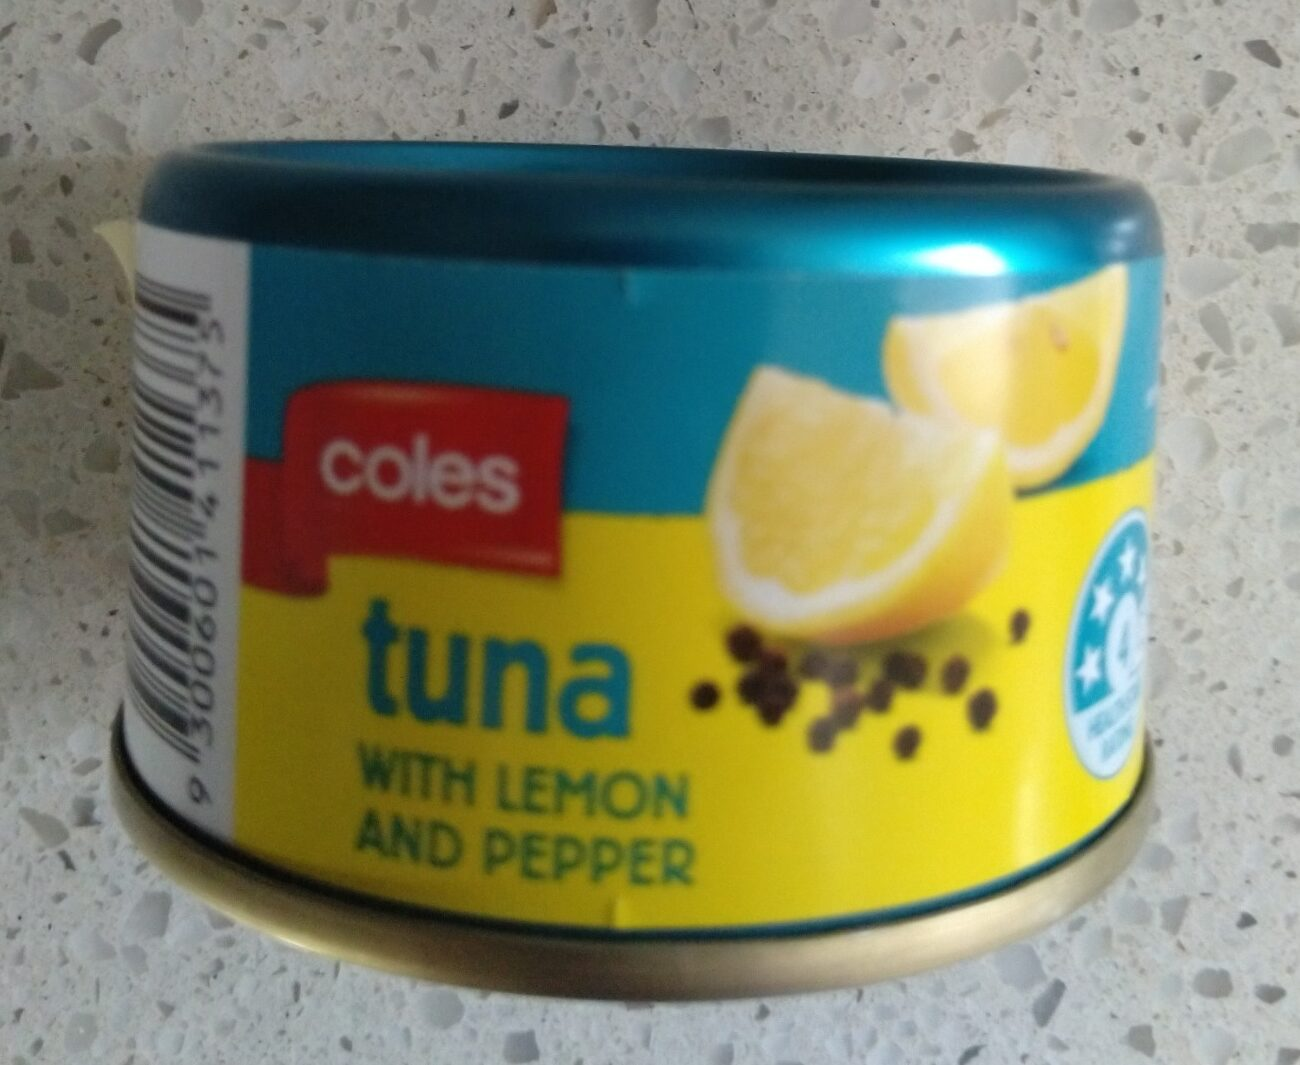 Coles Tuna with Lemon and Pepper - Product - en